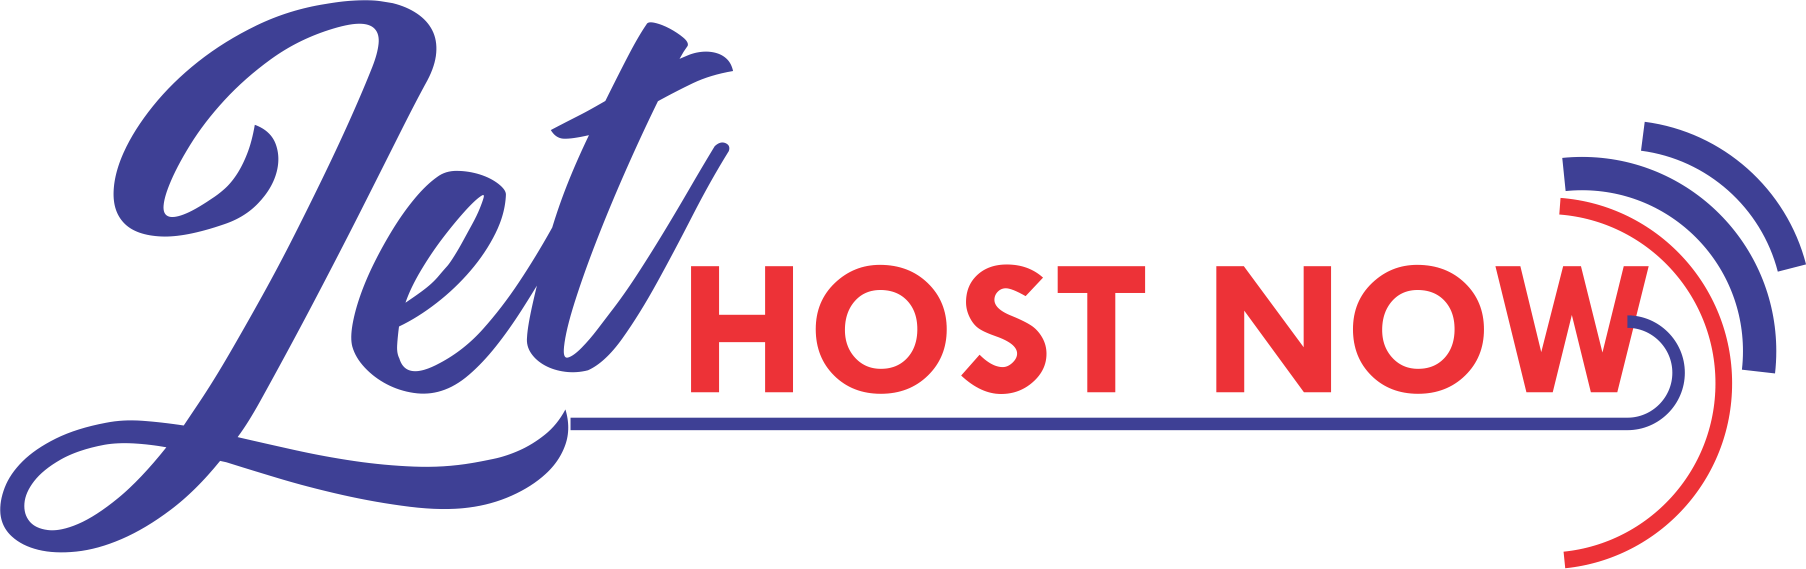 Cheap and Affordable Web Hosting and Domain Name Registration